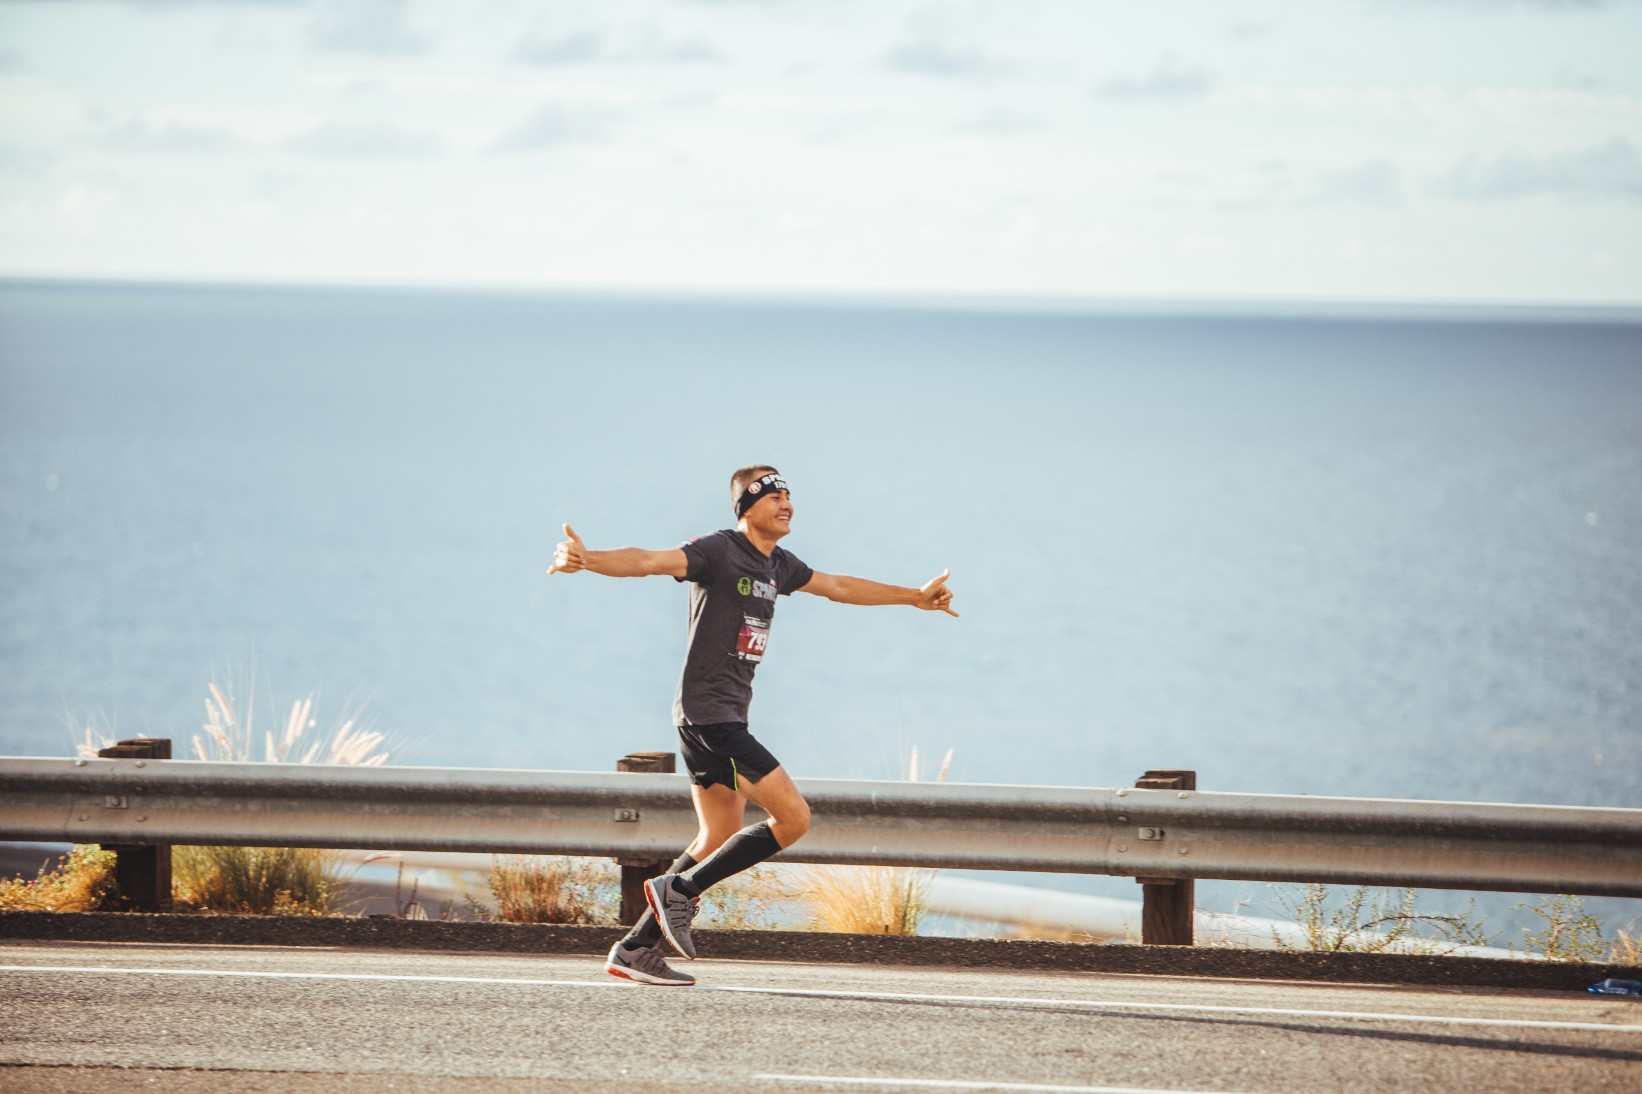 The Malibu Half Marathon scenic Course features incredible views of the ocean, the Malibu coastline and dolphins in the the water.